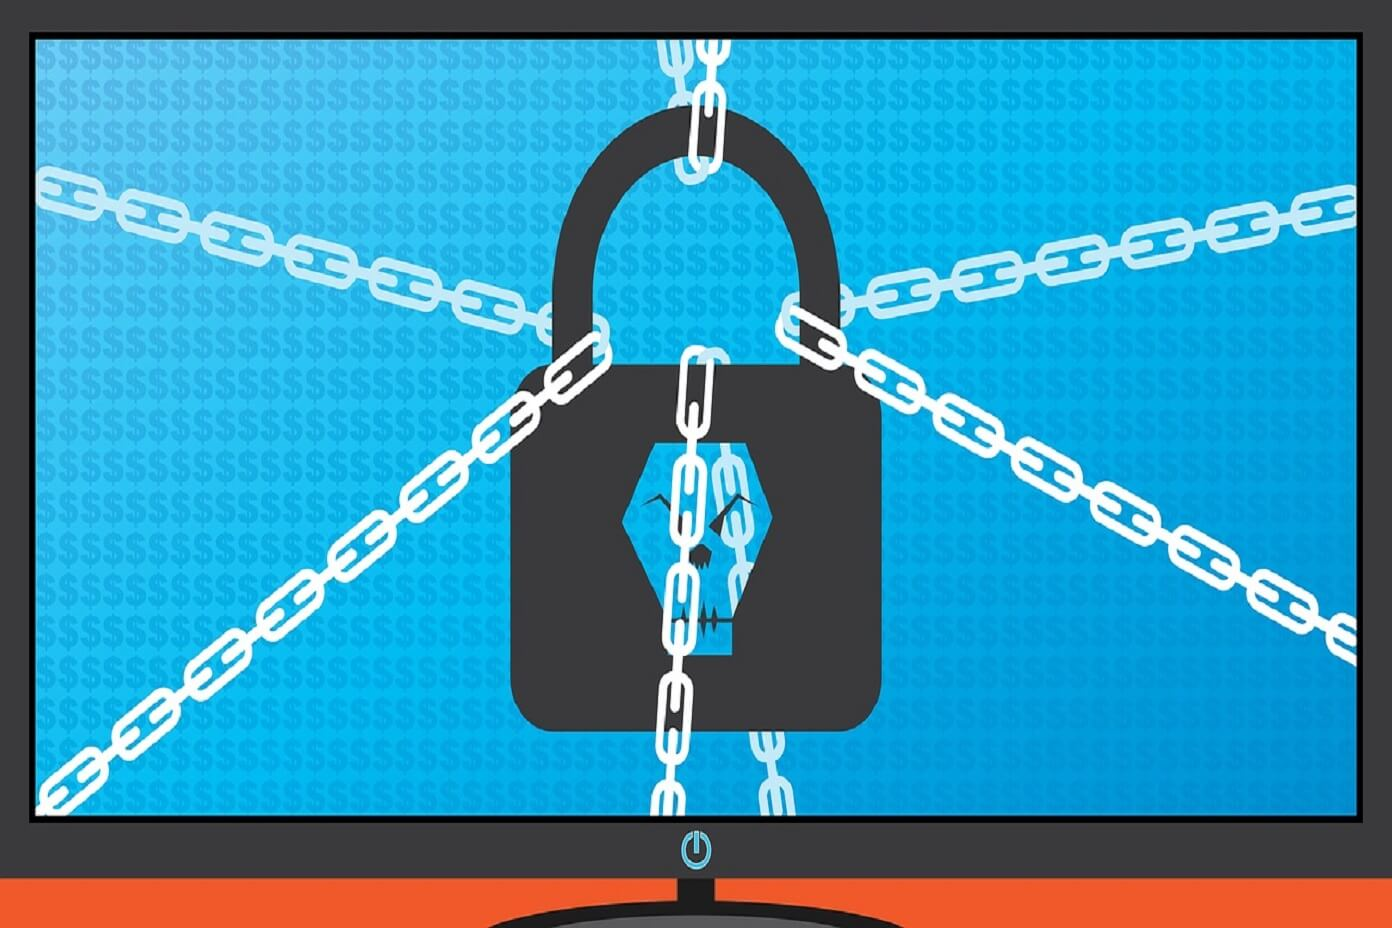 Top Alarming Cyber Security Facts for 2020